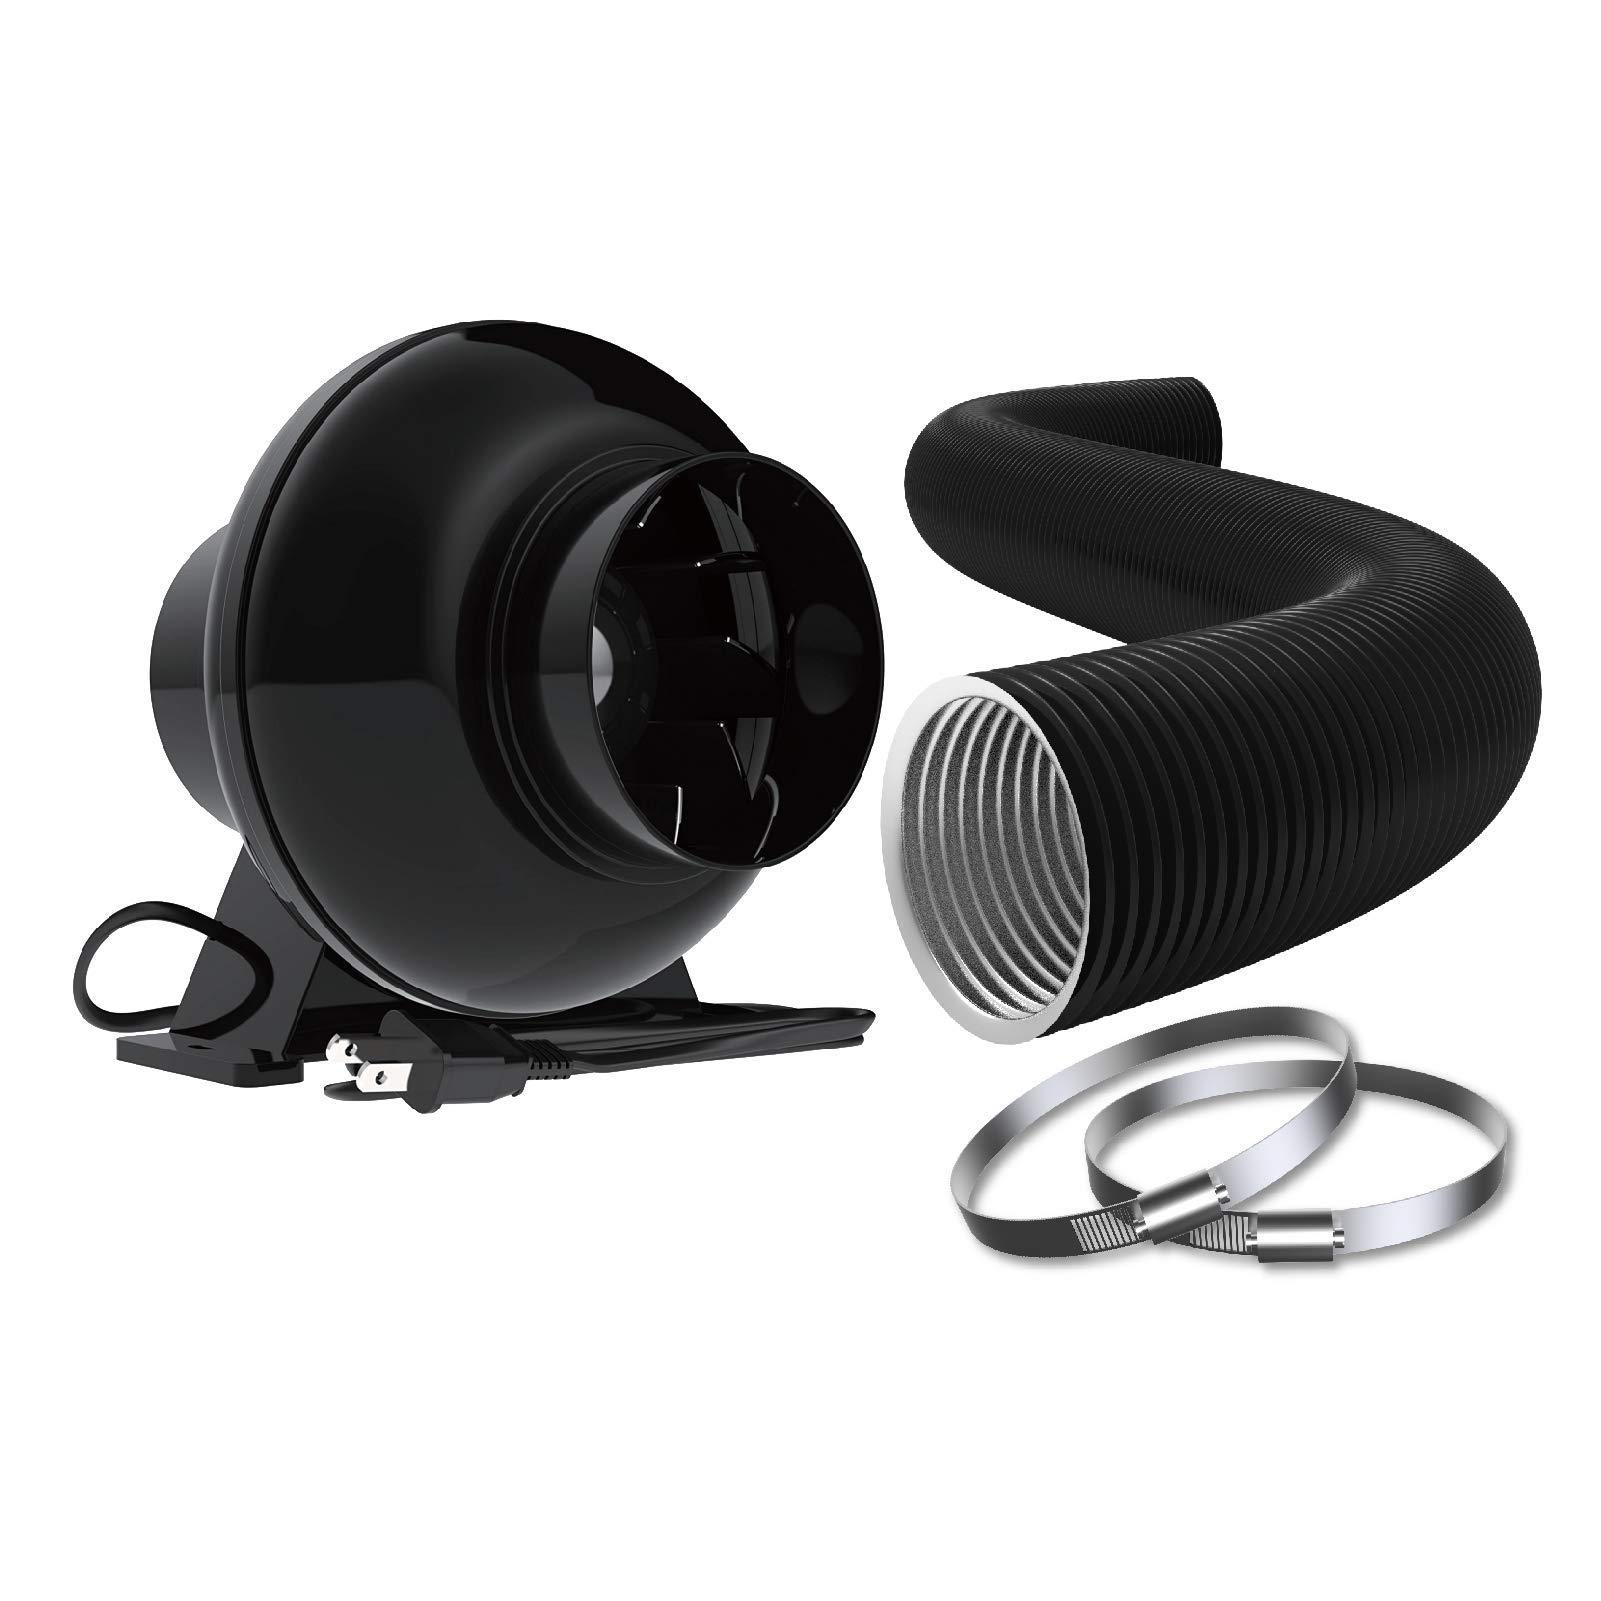 iGrowtek 4 Inch Inline Duct Ventilation Fan and 4 Inch Flexible Aluminum Ducting Bundle